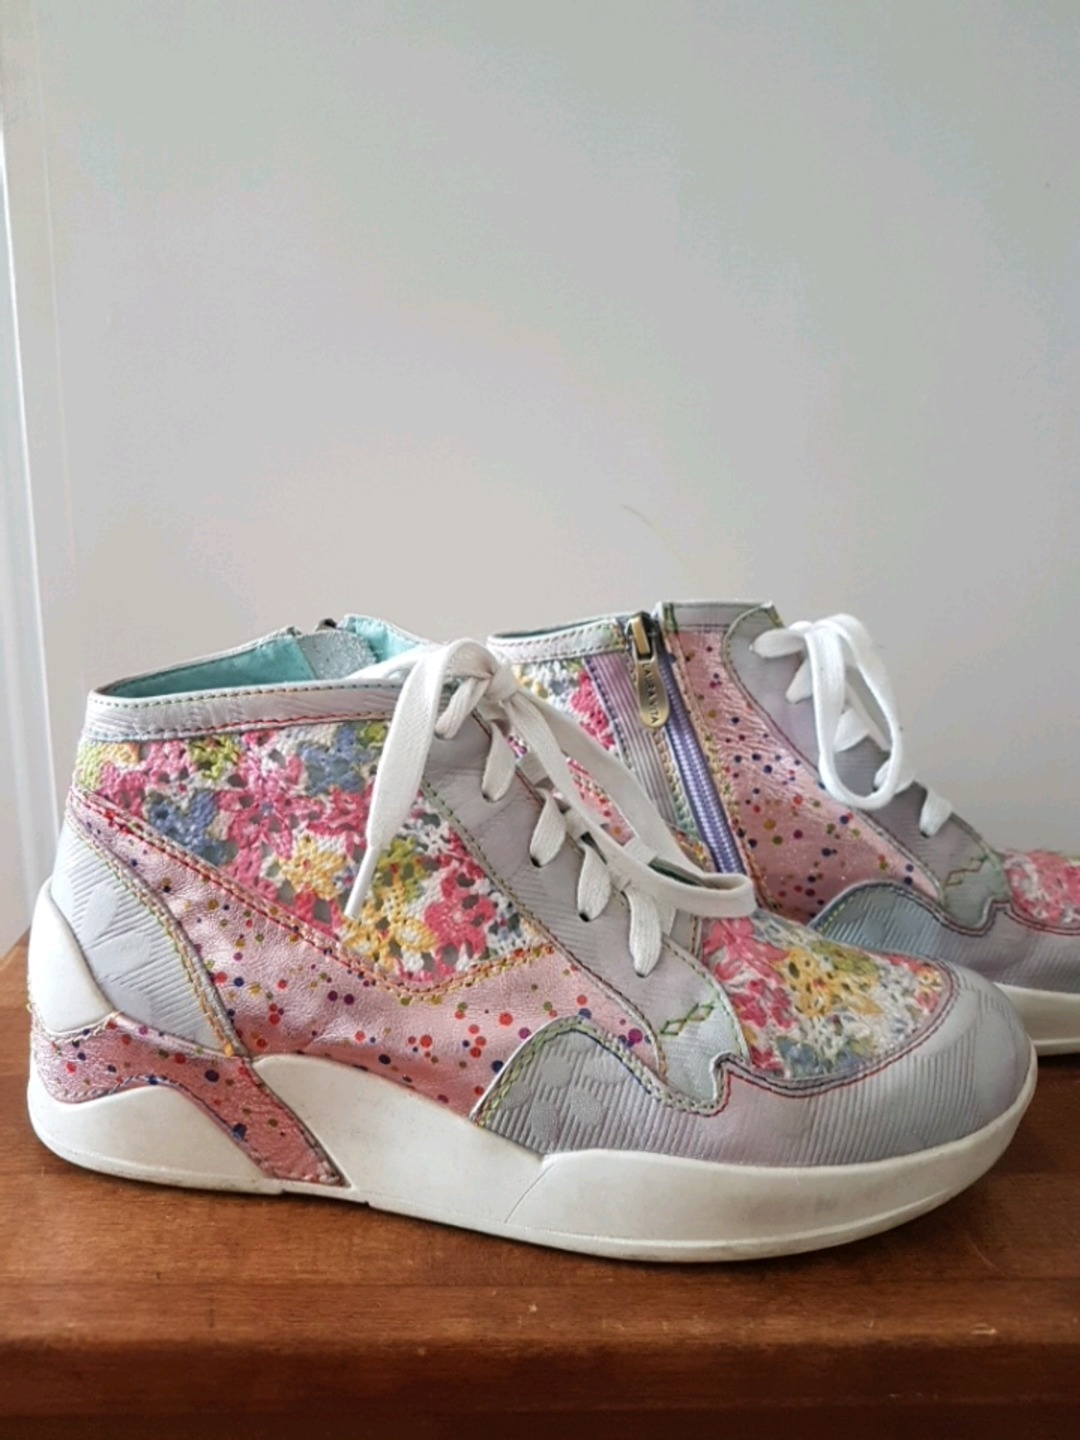 Women's sneakers - LAURA VITA photo 1